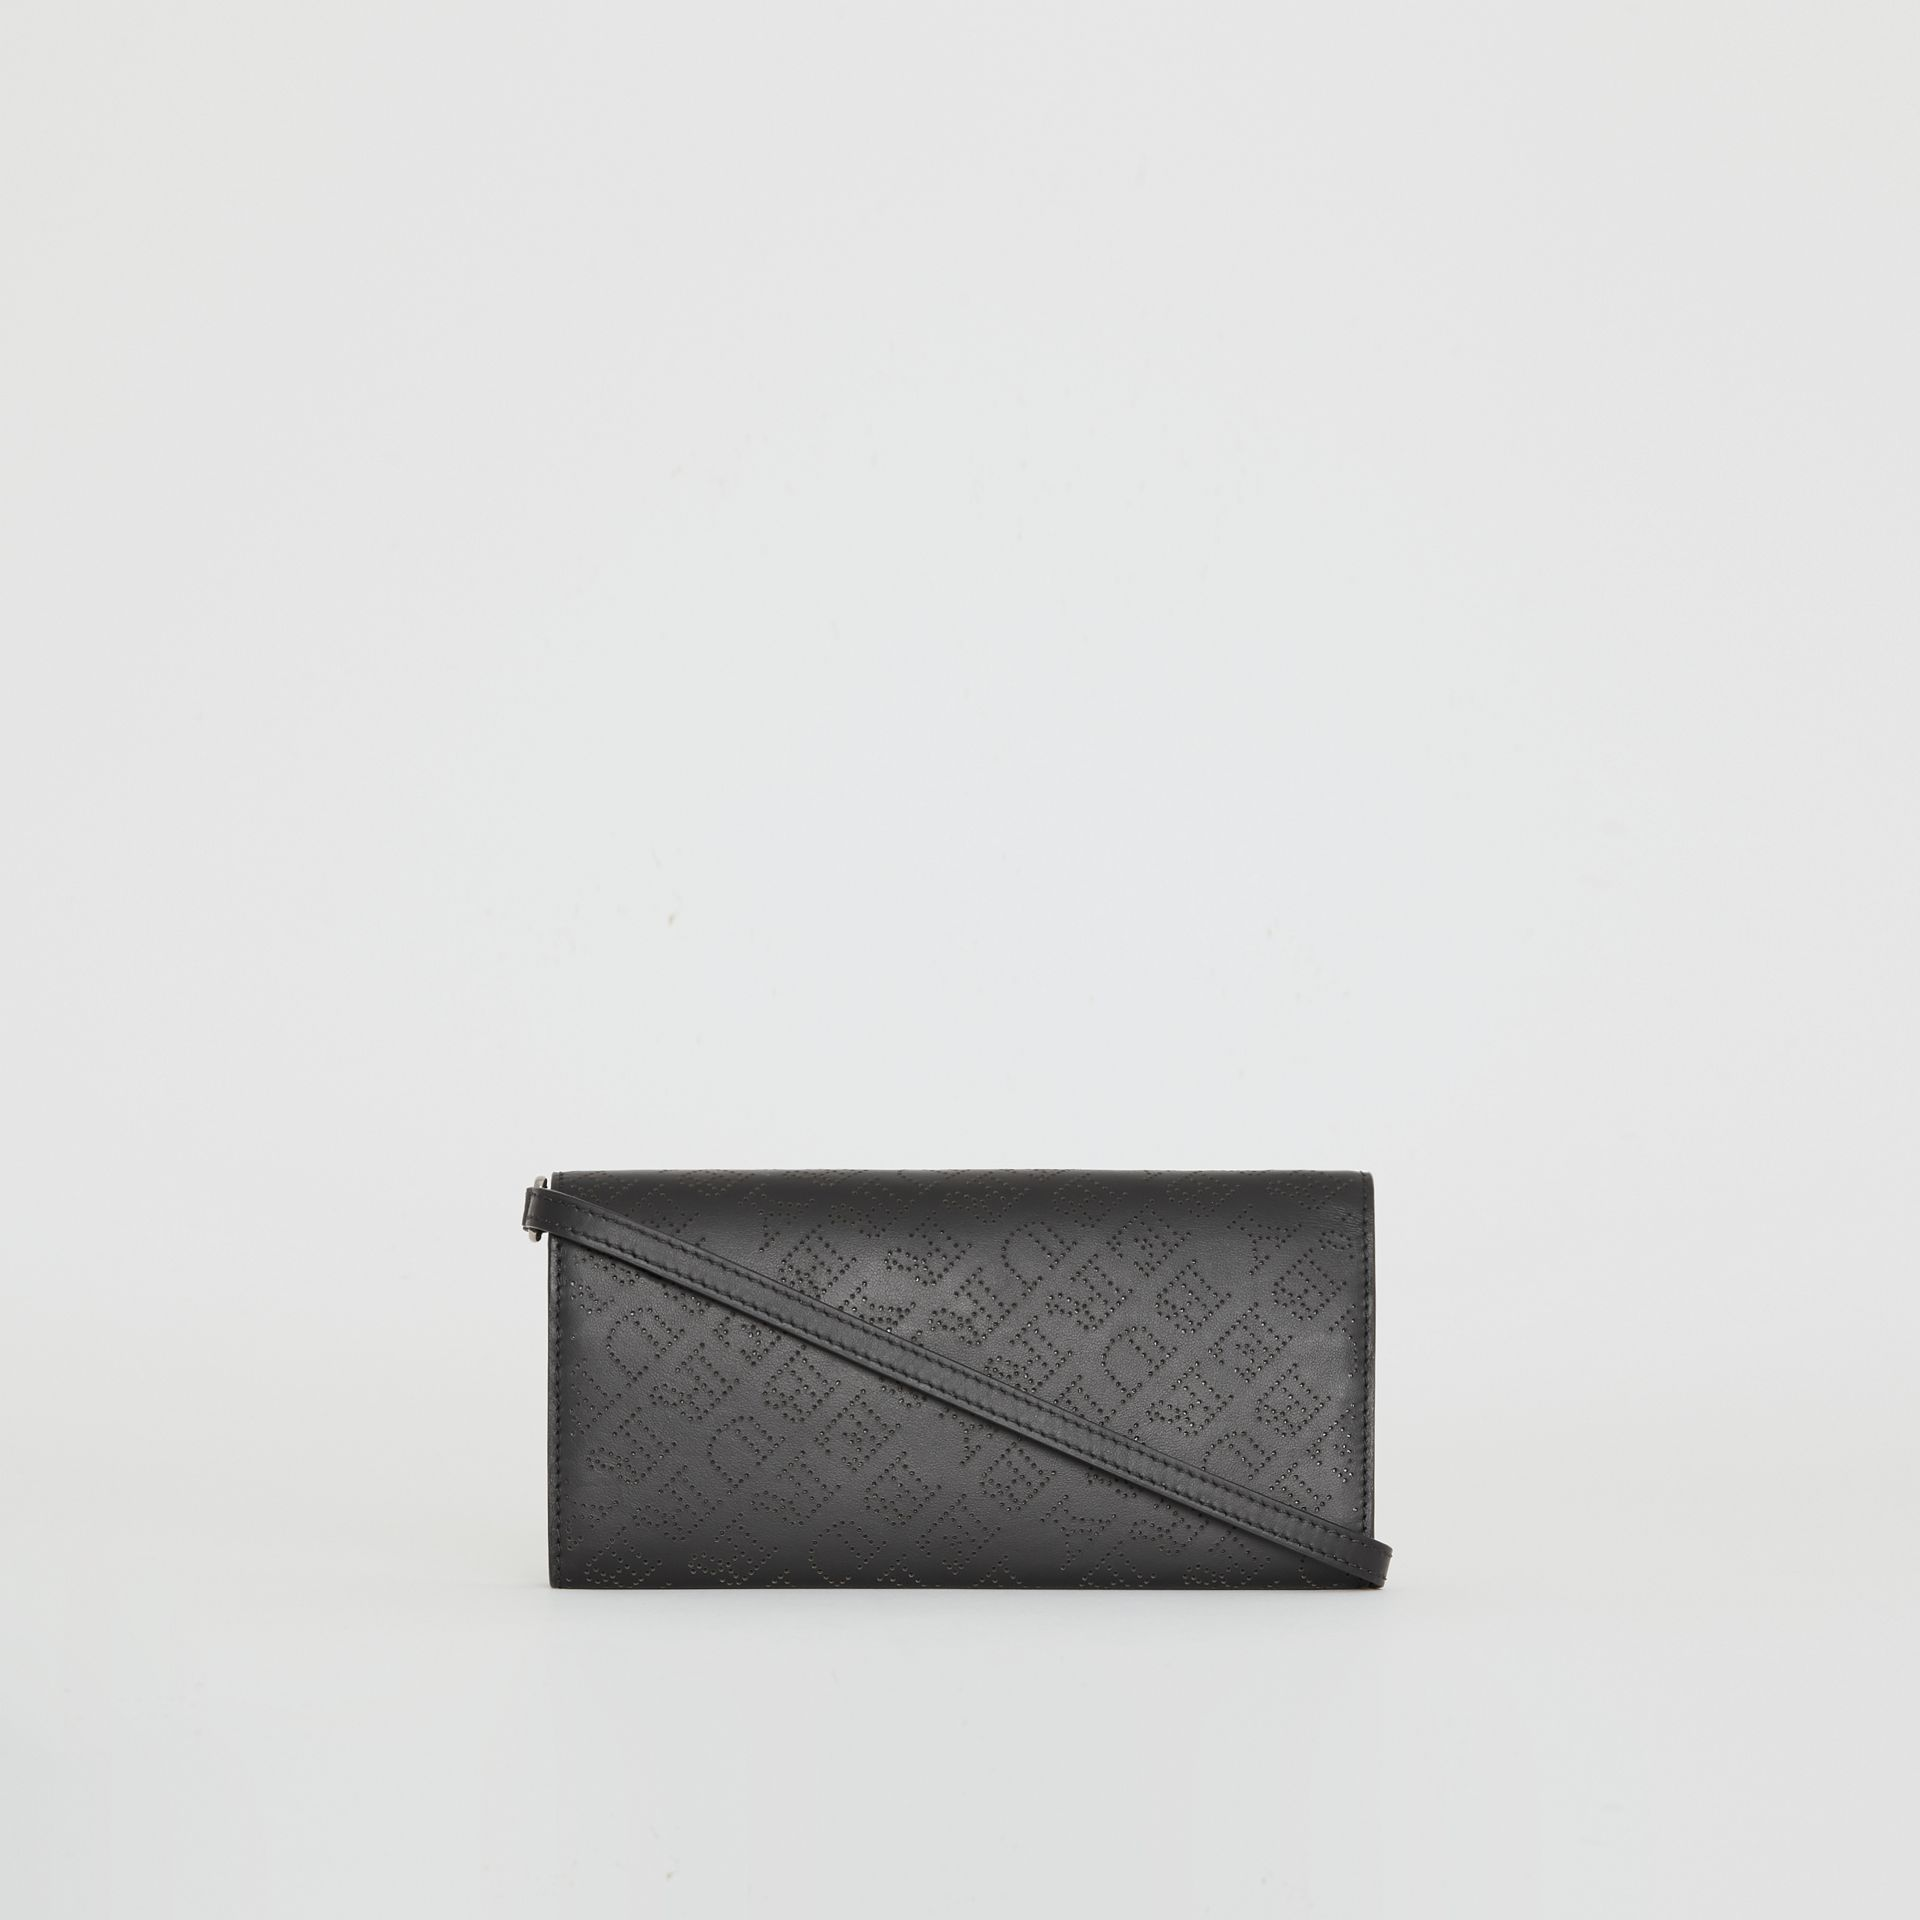 Perforated Logo Leather Wallet with Detachable Strap in Black - Women | Burberry United Kingdom - gallery image 7